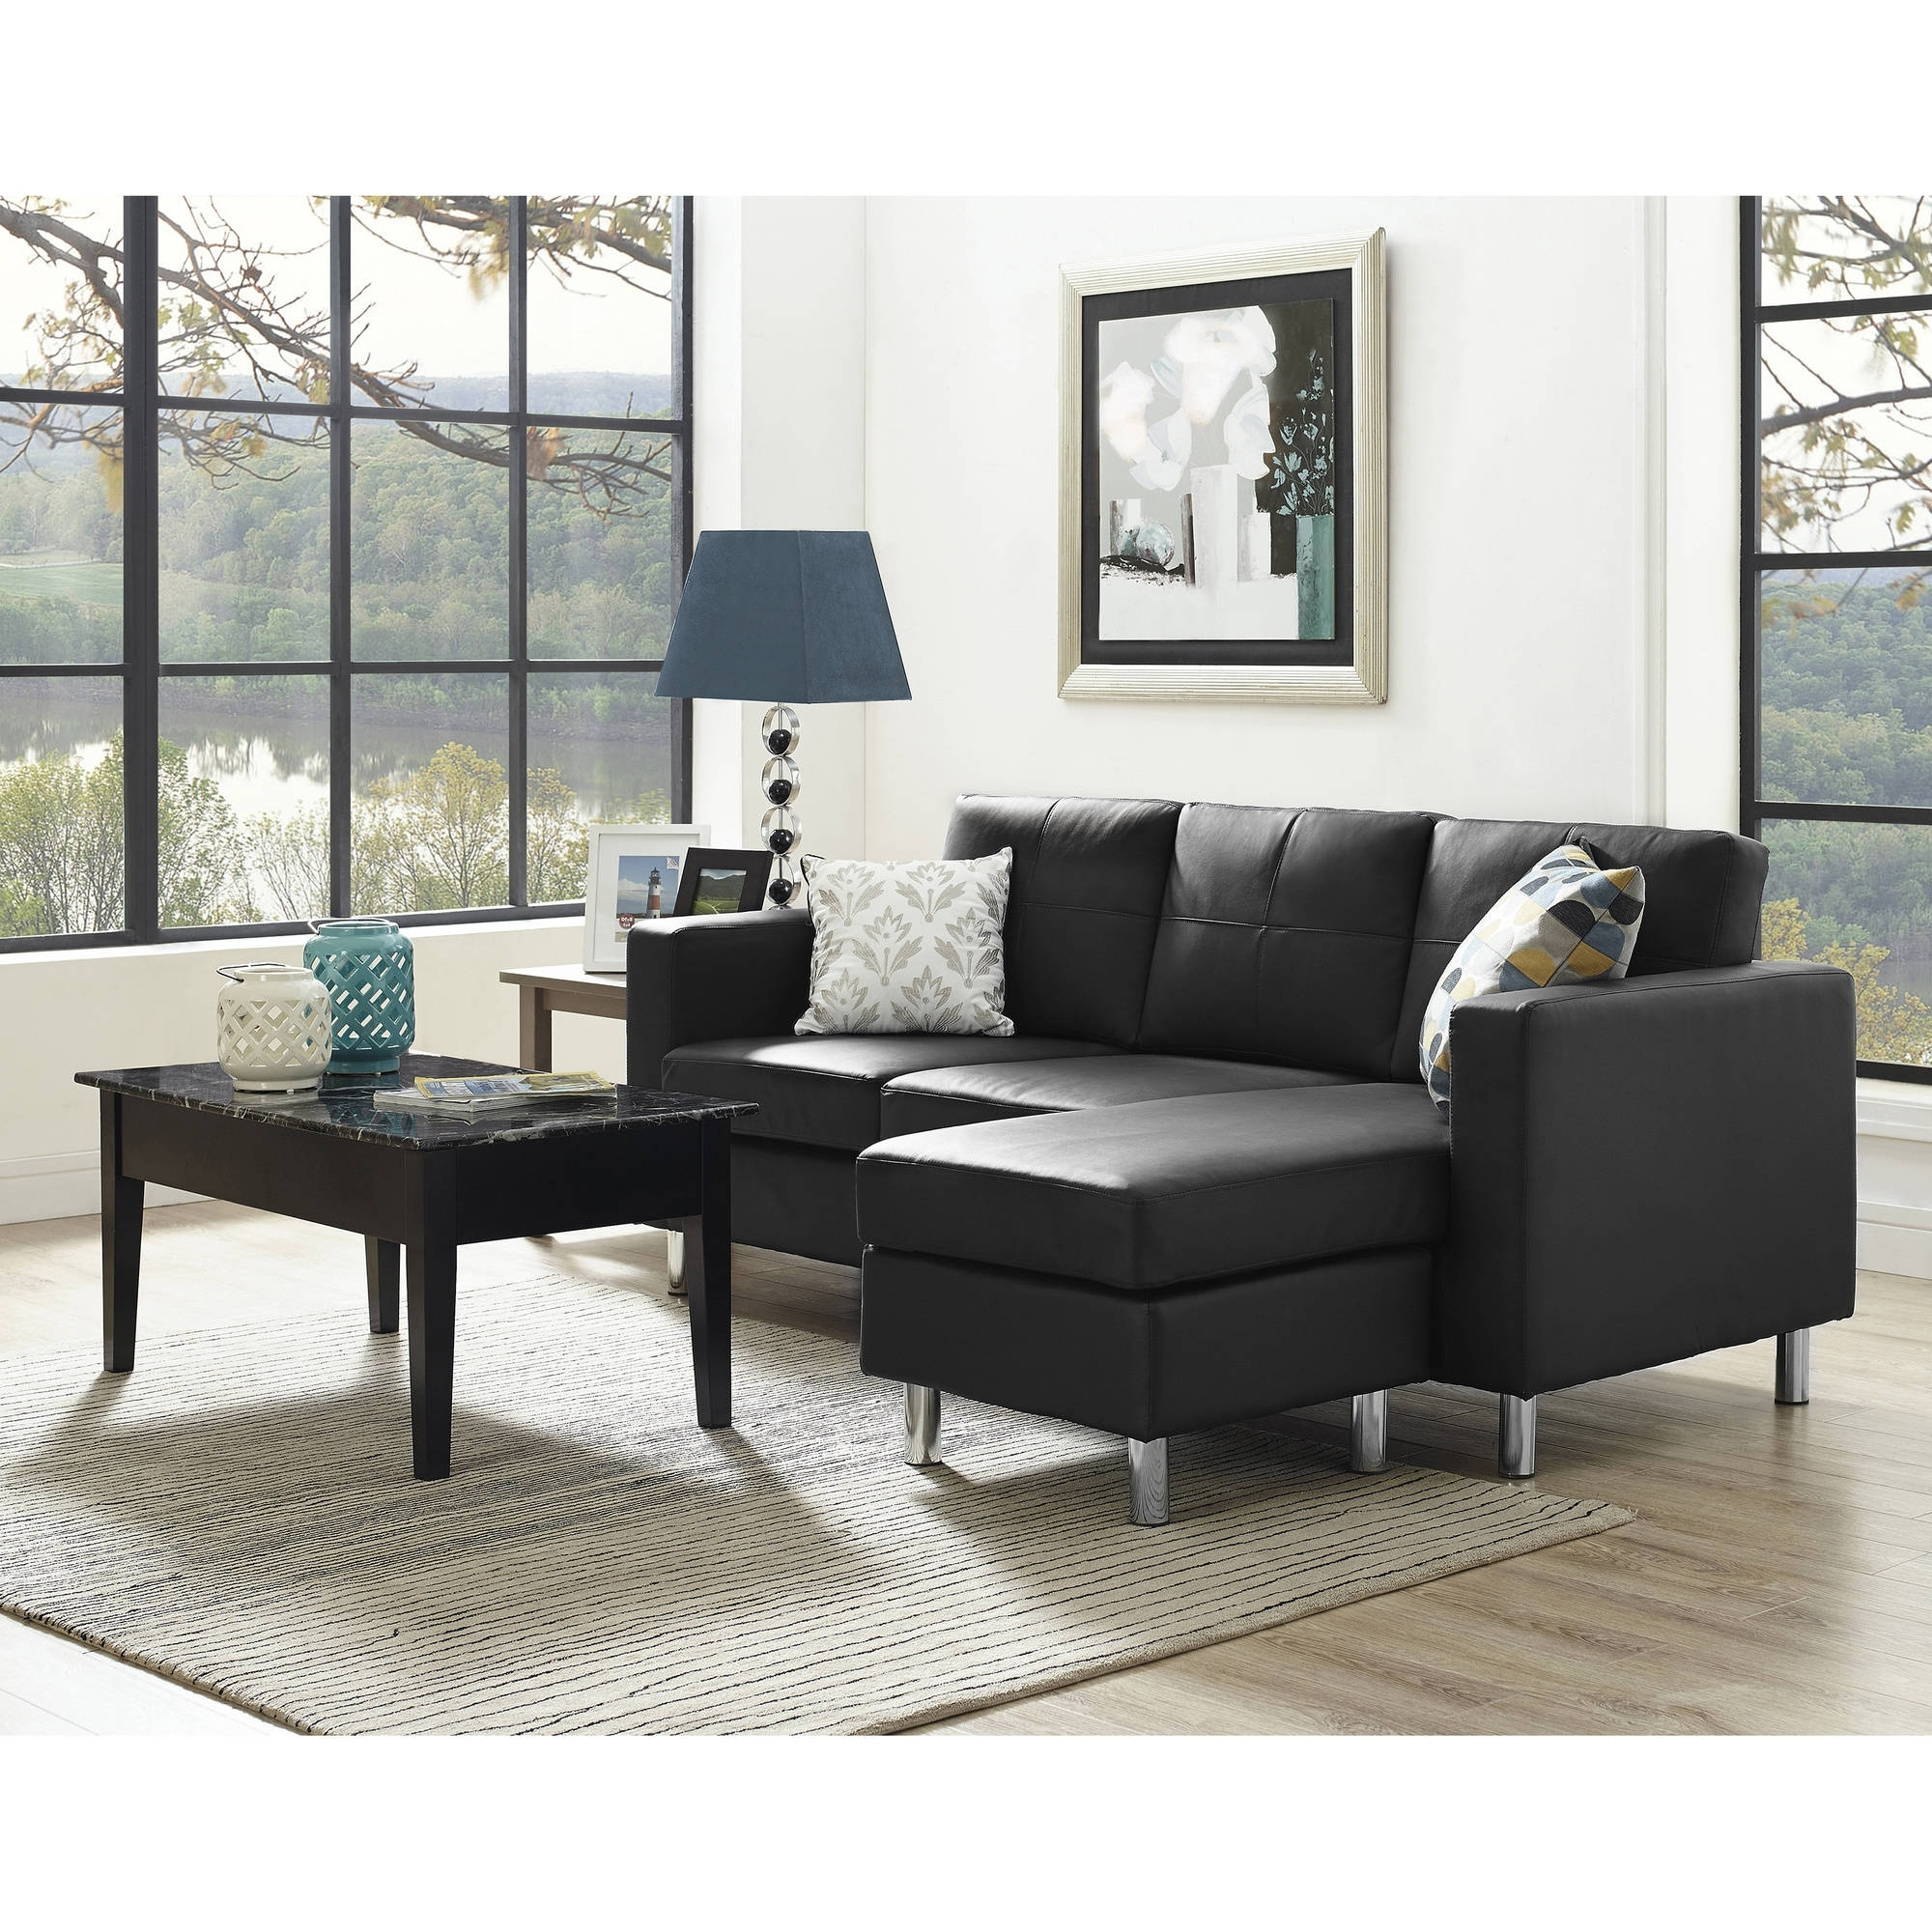 Preferred Sectional Sofas For Small Places Regarding Dorel Living Small Spaces Configurable Sectional Sofa, Multiple (Gallery 3 of 20)